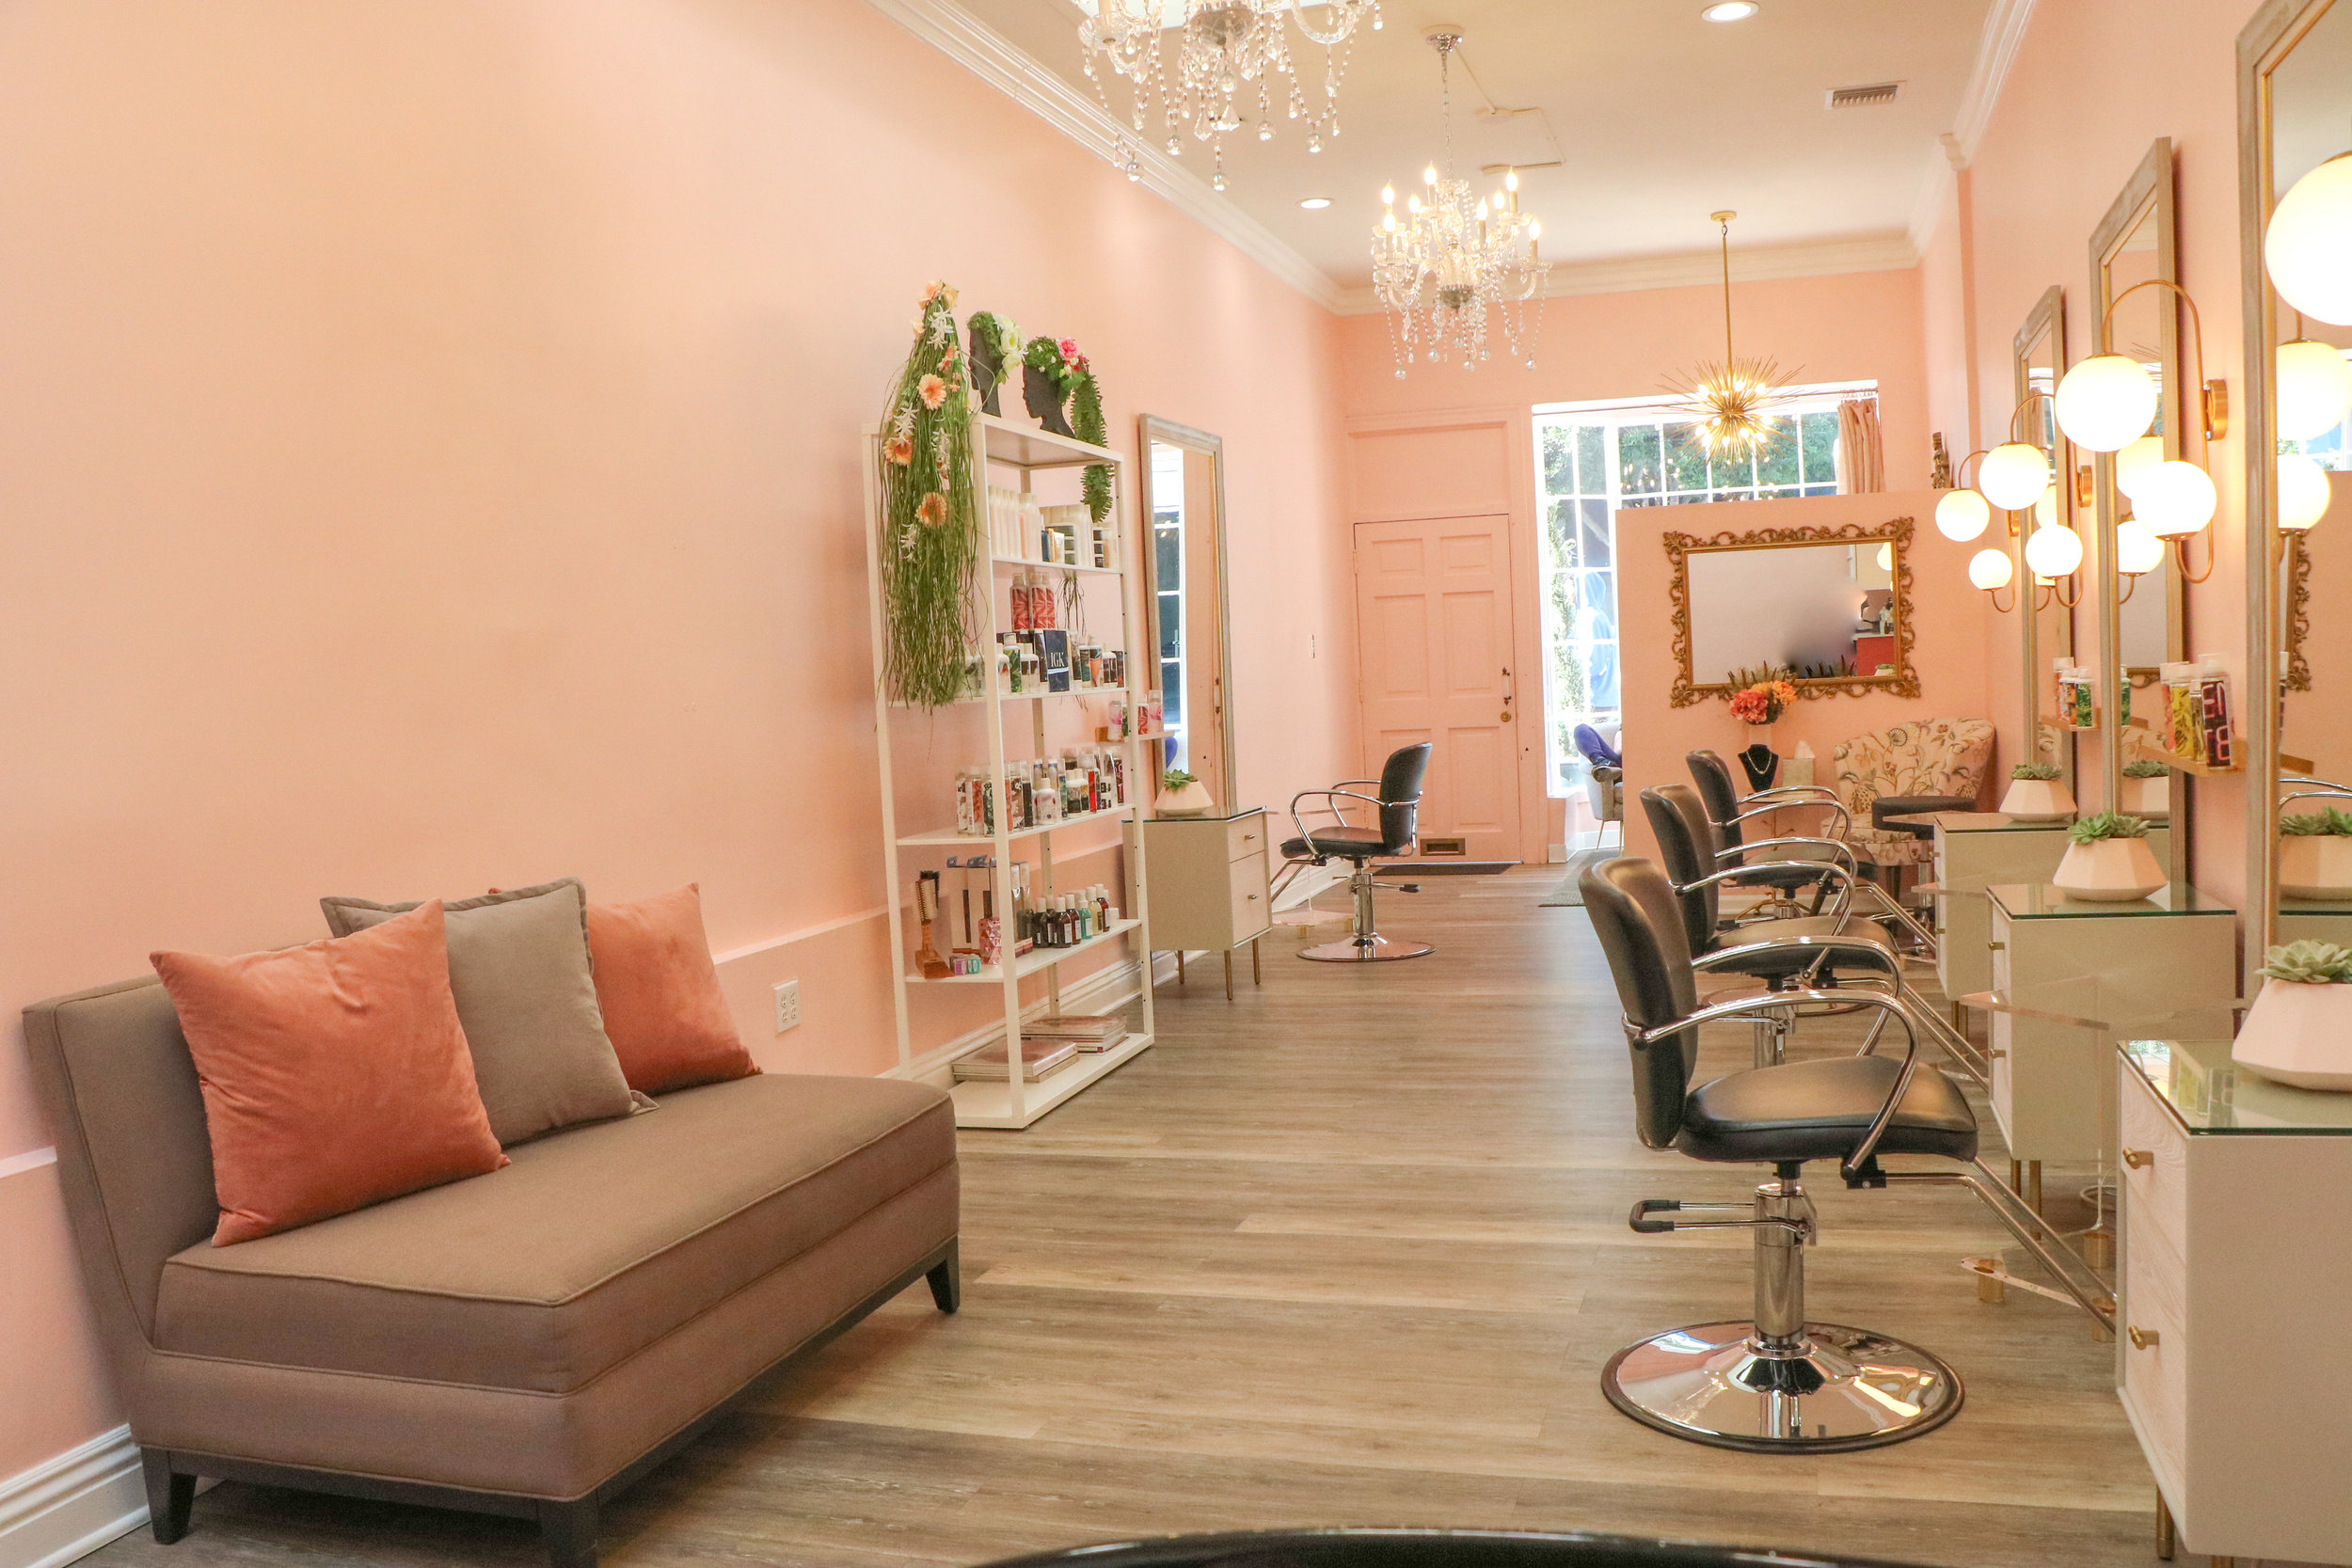 Le Salon RosE - Beverly HillsA luxury boutique salon in the heart of Beverly Hills. Sunny and drenched in natural light, this space is sophisticated and serene with an element of whimsy.